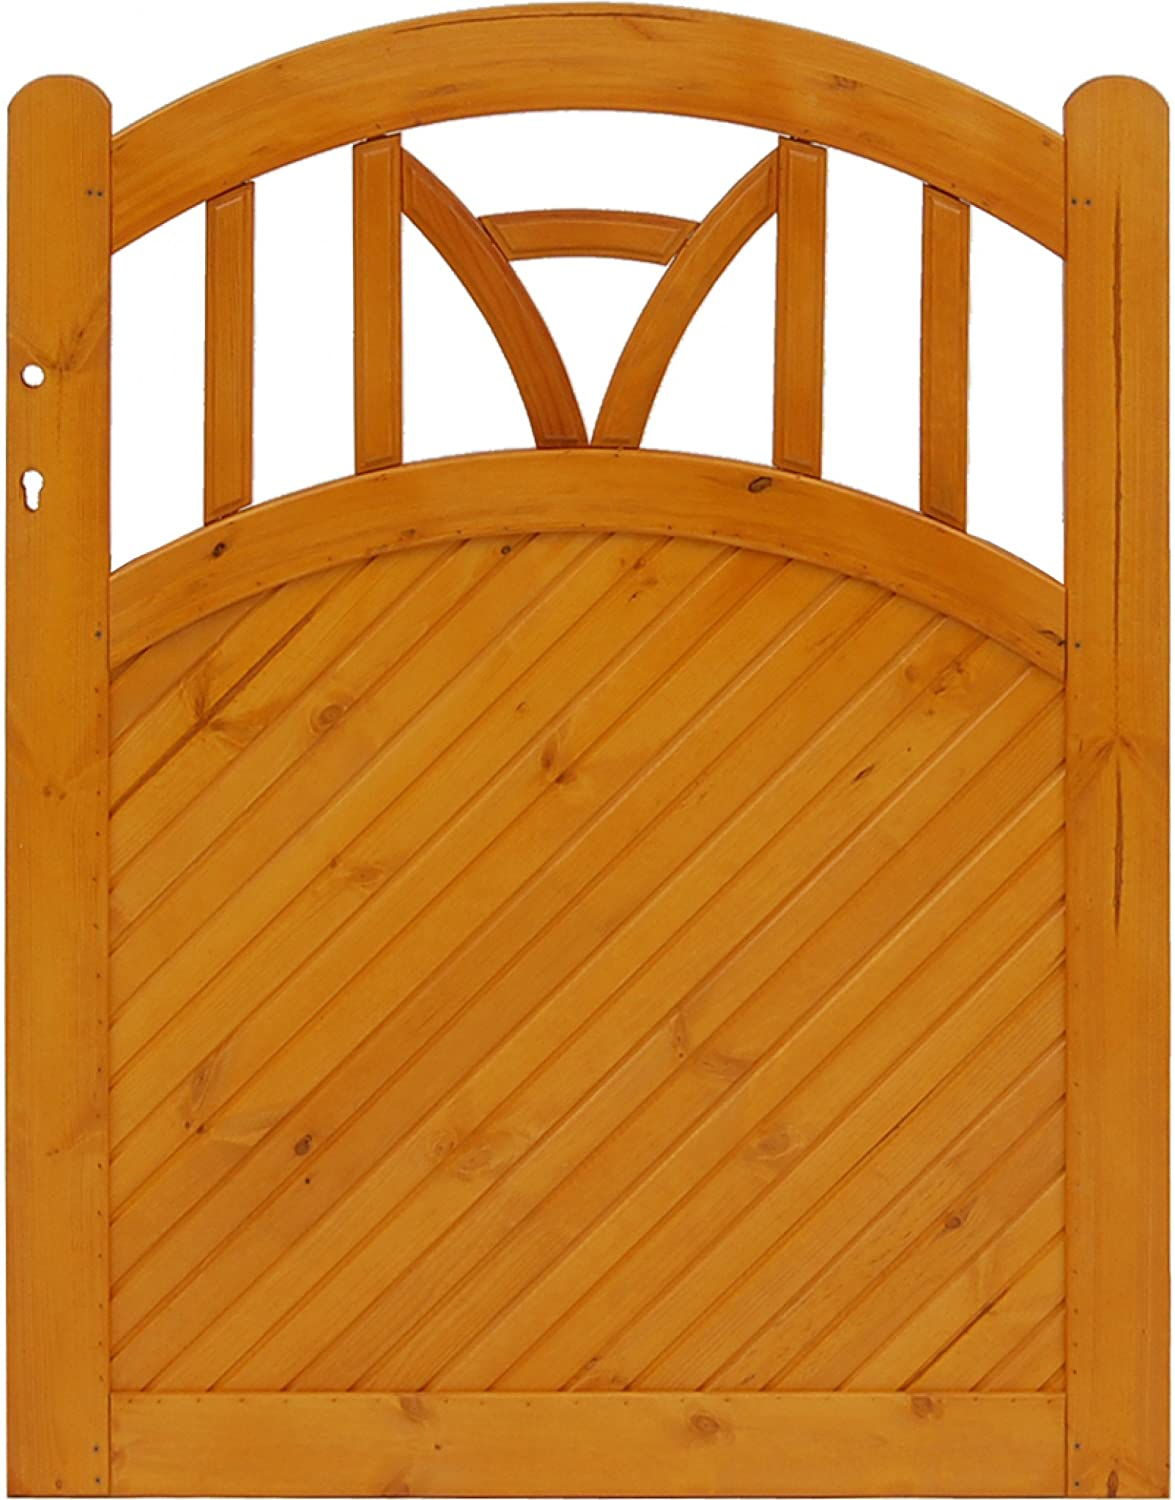 Andrewex wooden wicket, fencing panel, garden wicket 120 x 100, varnished, pinie